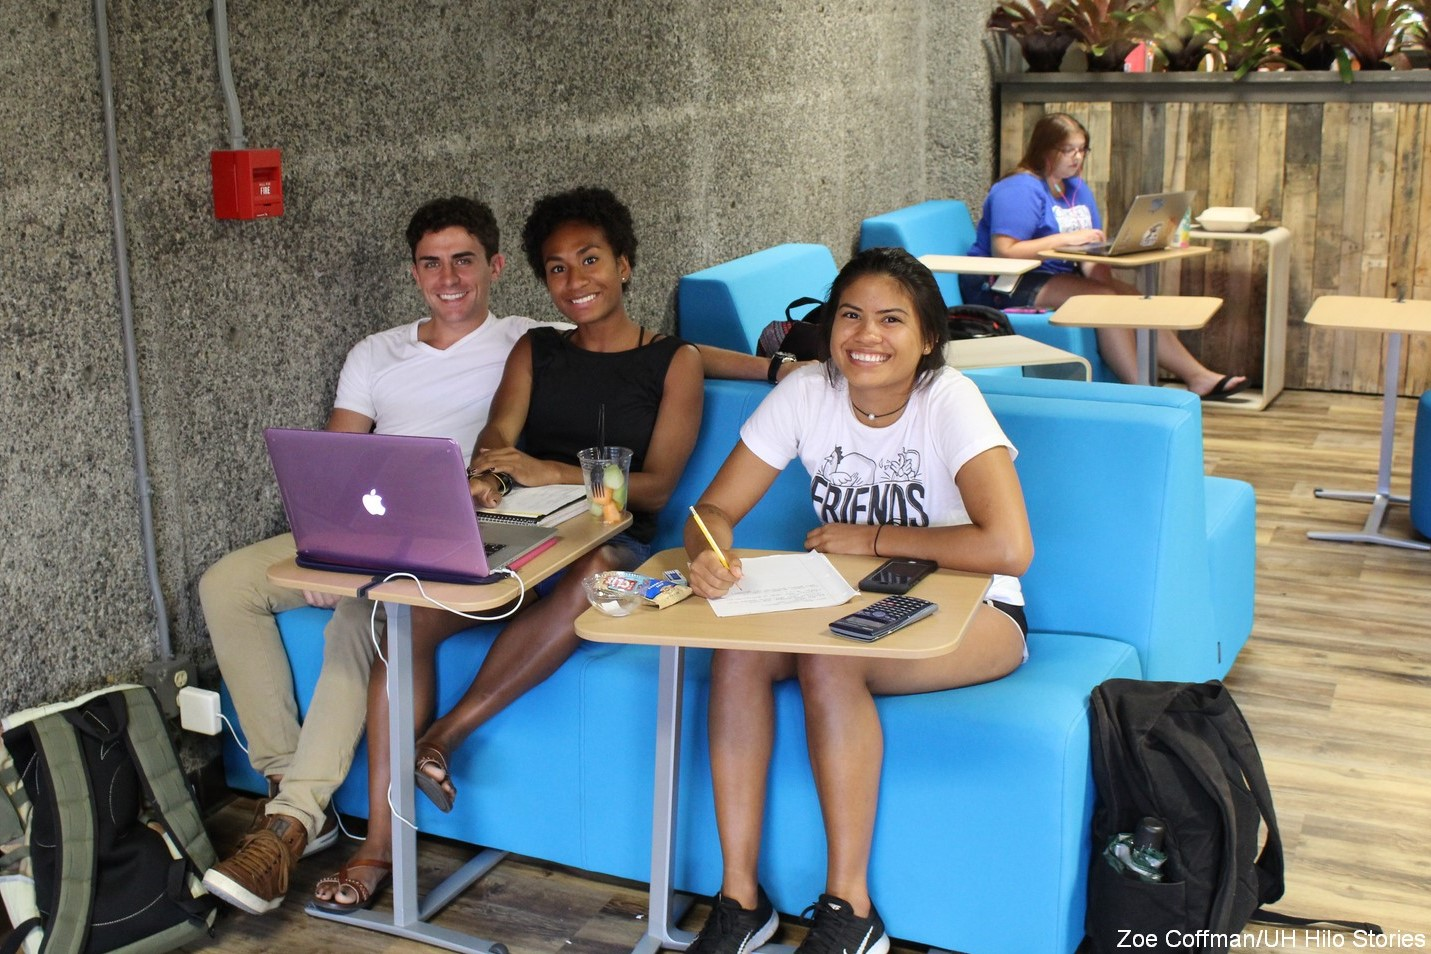 Three students seated on the new bright blue furniture.